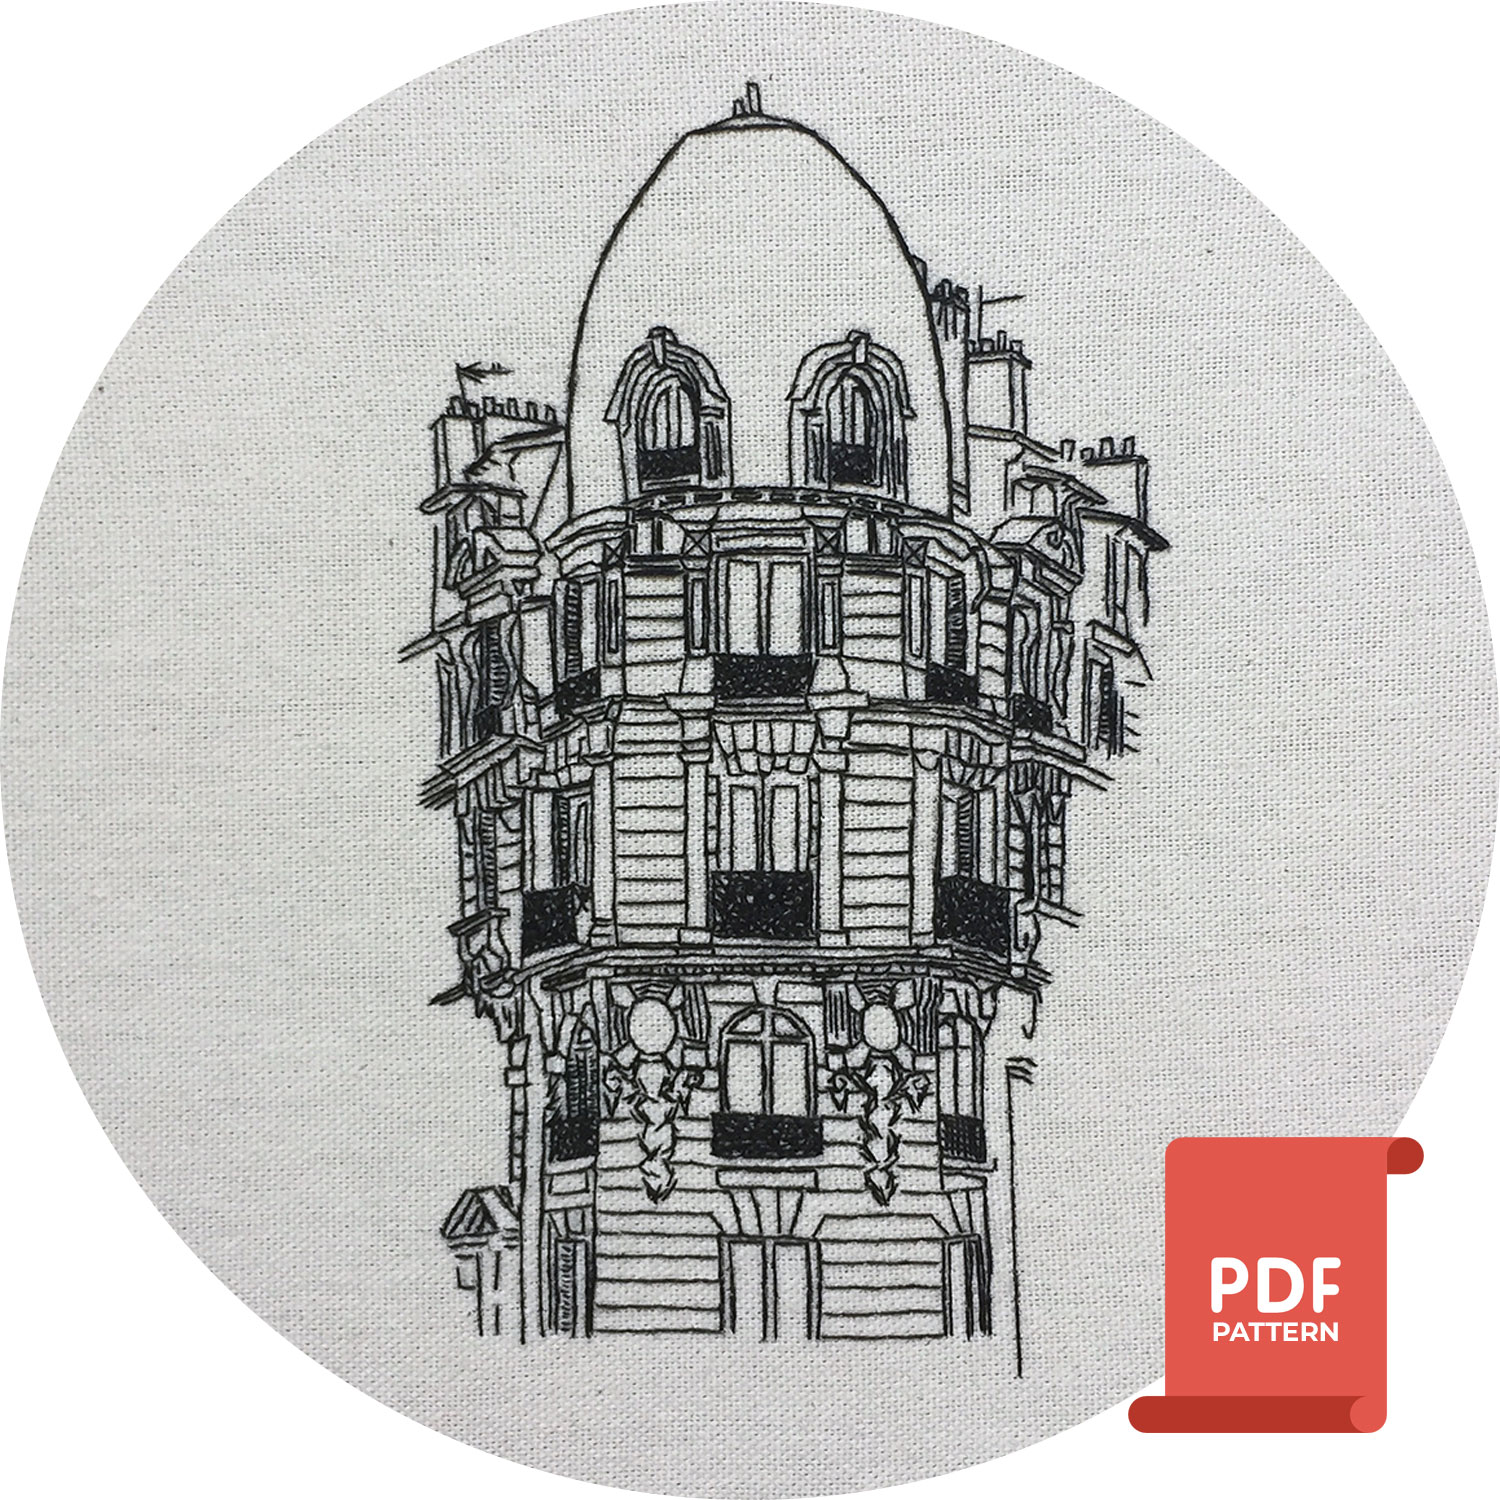 advanced embroidery pattern of Daumesnil, Paris